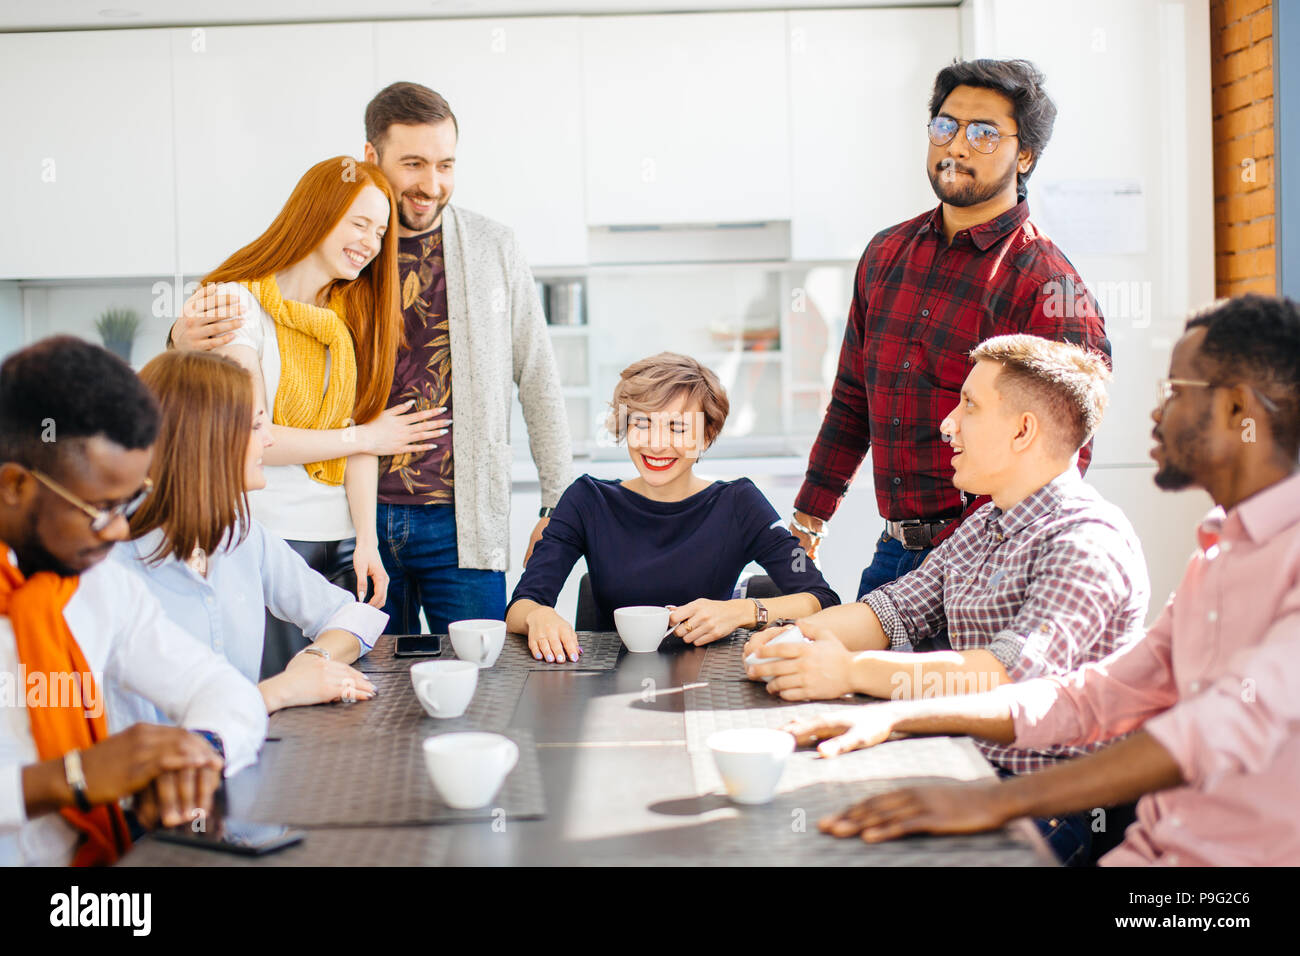 laughing business people telling jokes while drinking tea in the office kitchen - Stock Image